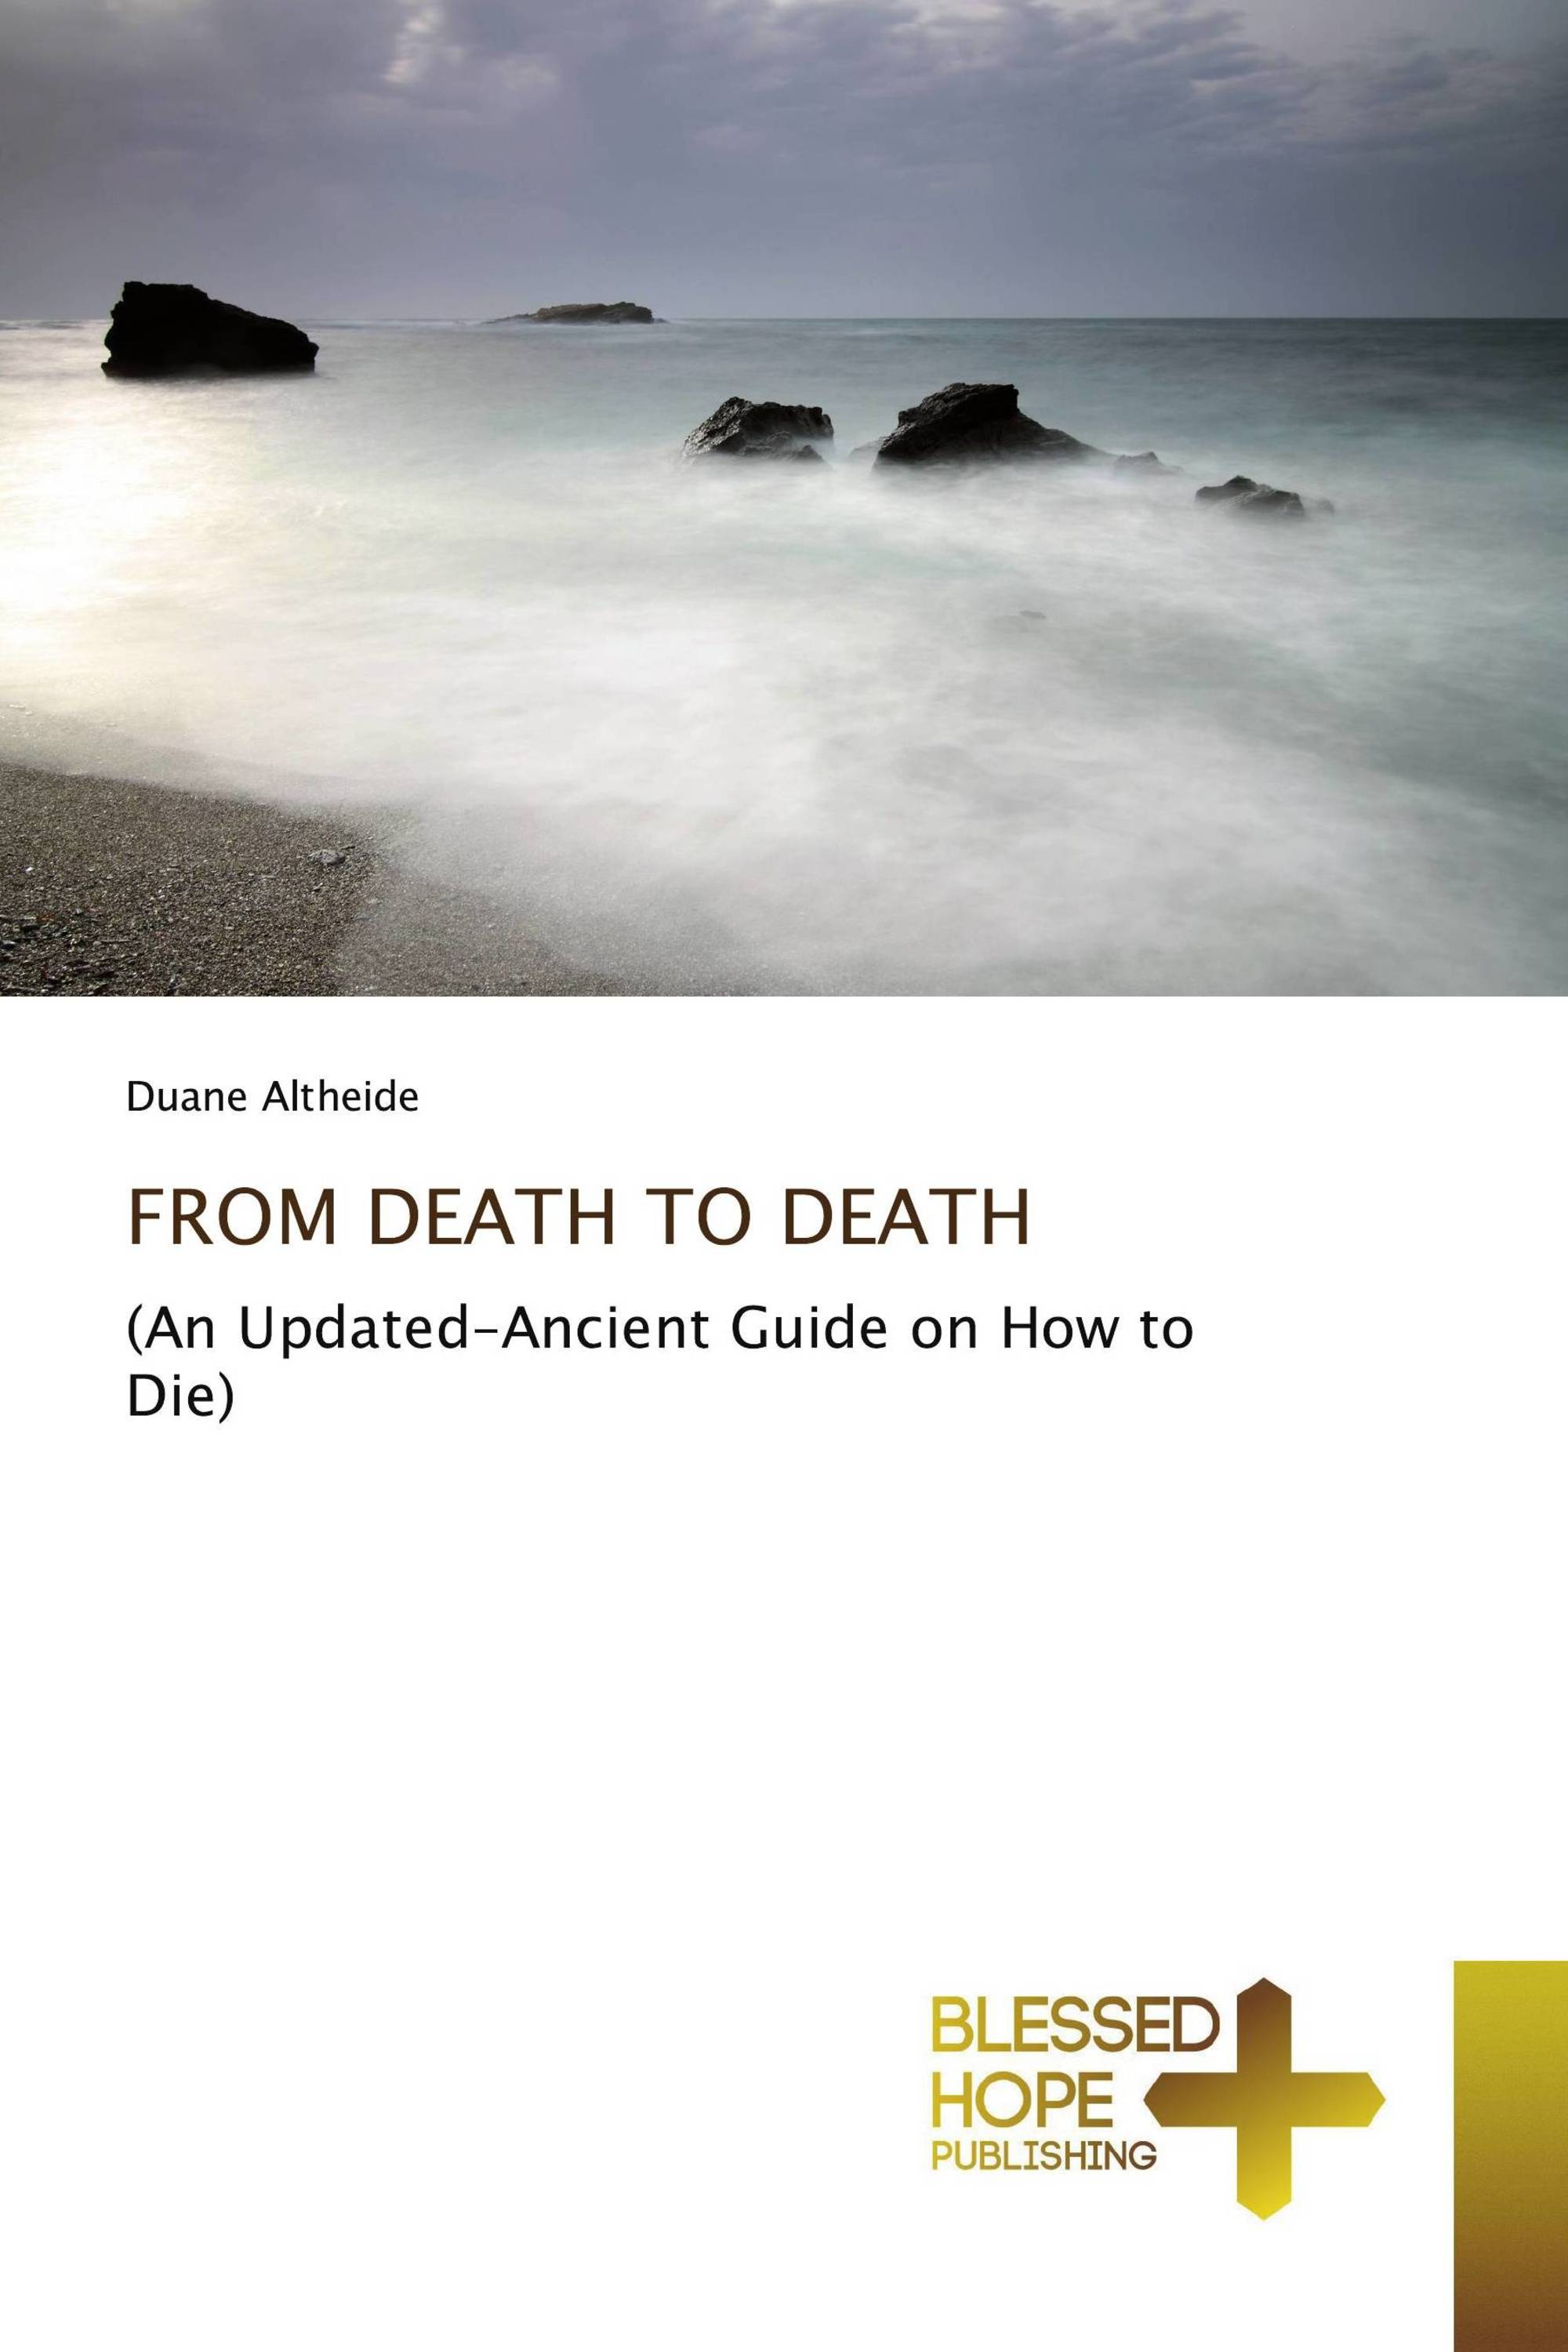 FROM DEATH TO DEATH